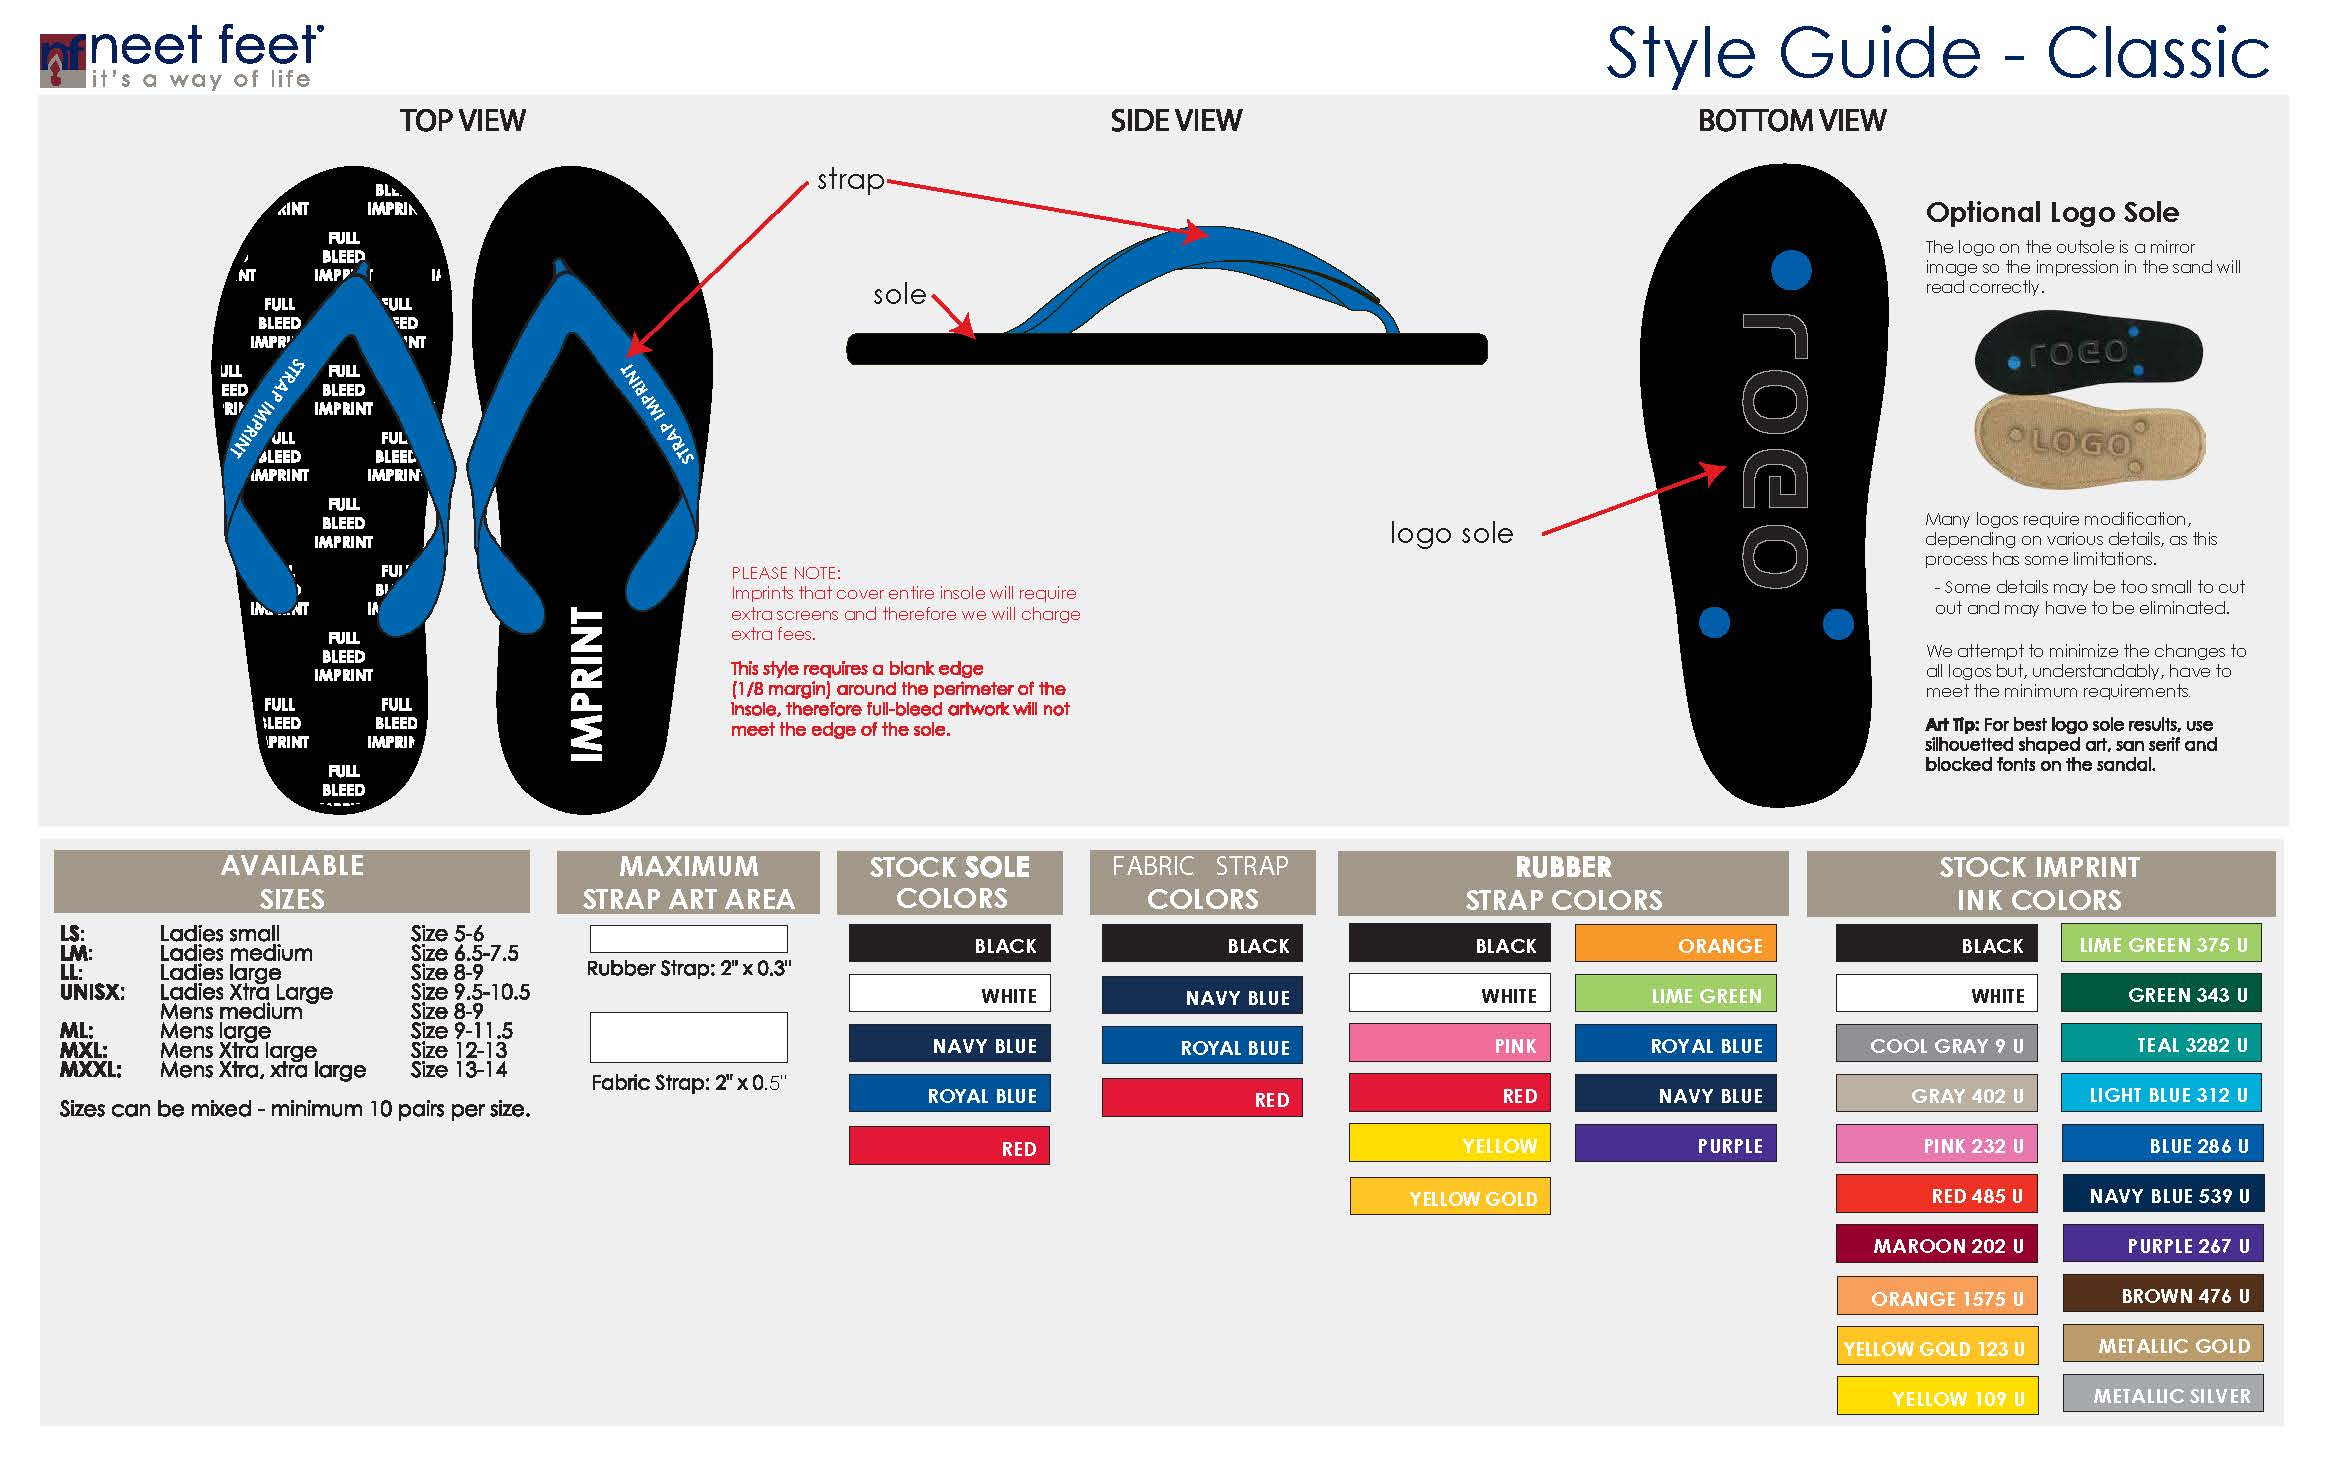 Classic Style Guide